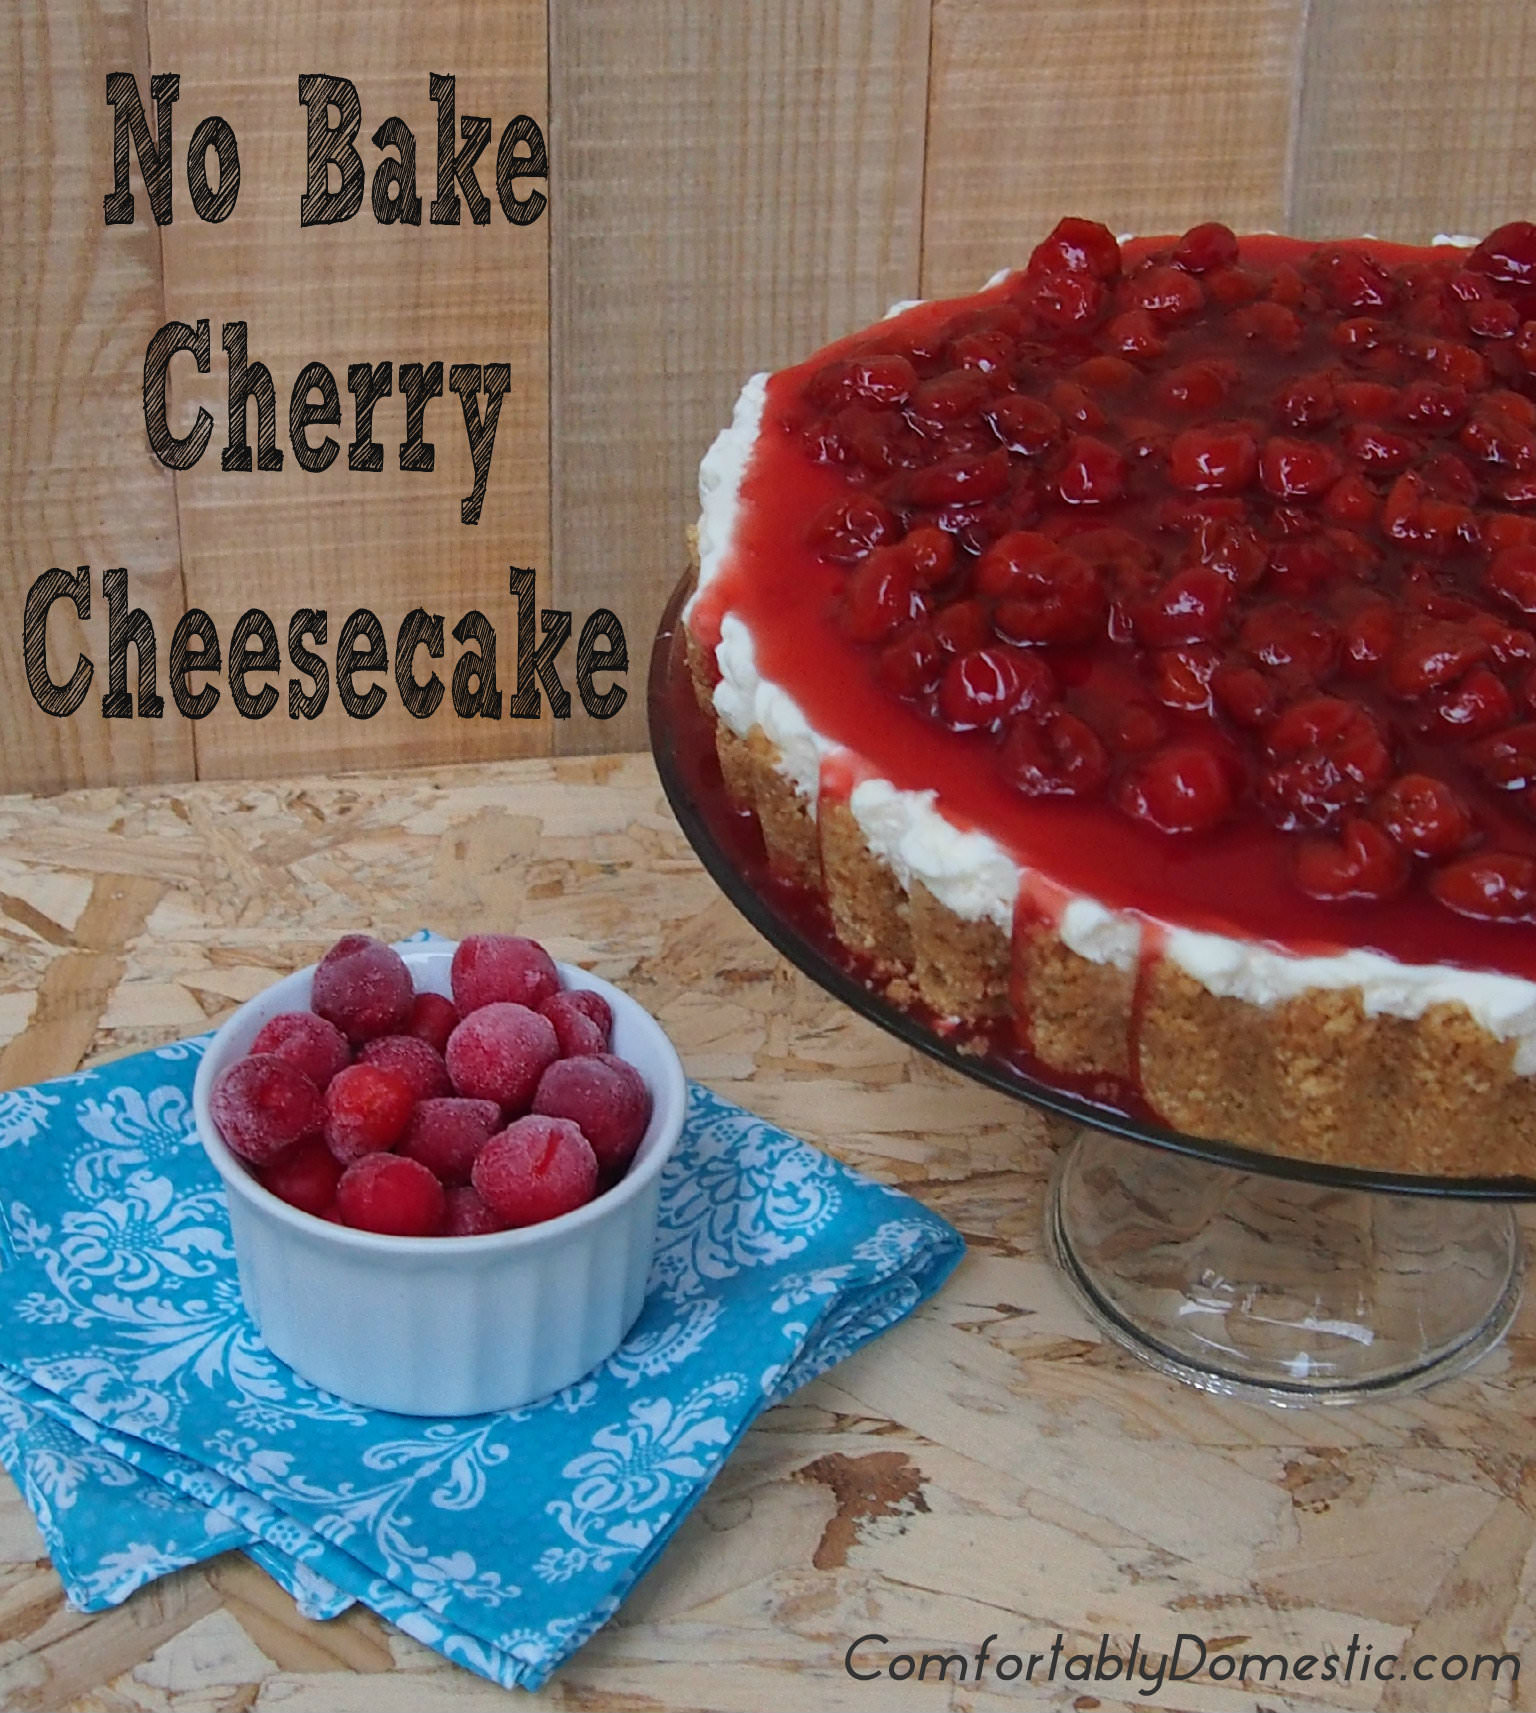 No Bake Cherry Cheesecake is a quick and easy dessert alternative to traditional cheesecake. Get all of the rich flavor, without all the work! || ComfortablyDomestic.com